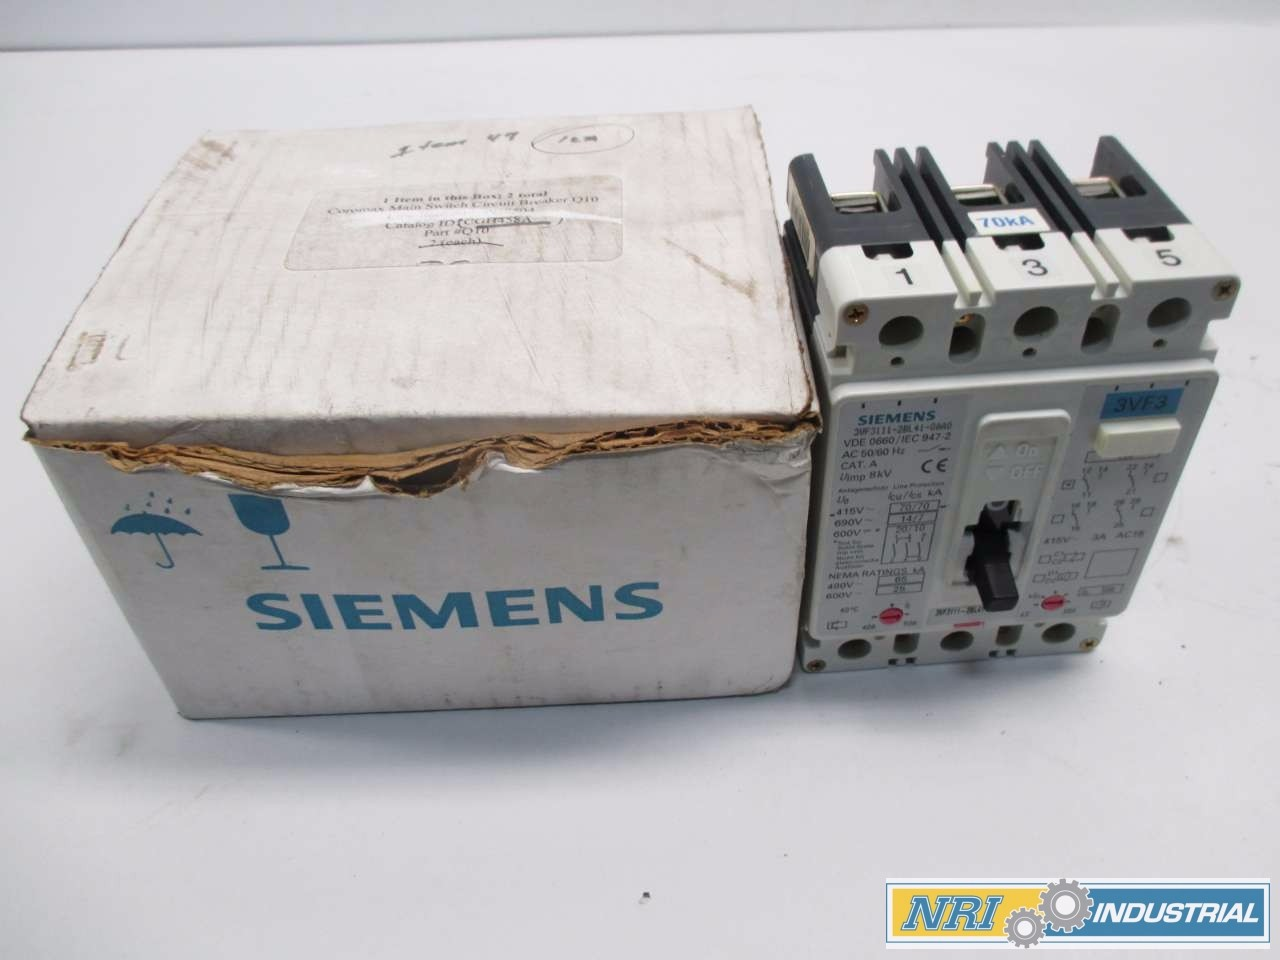 NEW SIEMENS 50 A CIRCUIT BREAKER